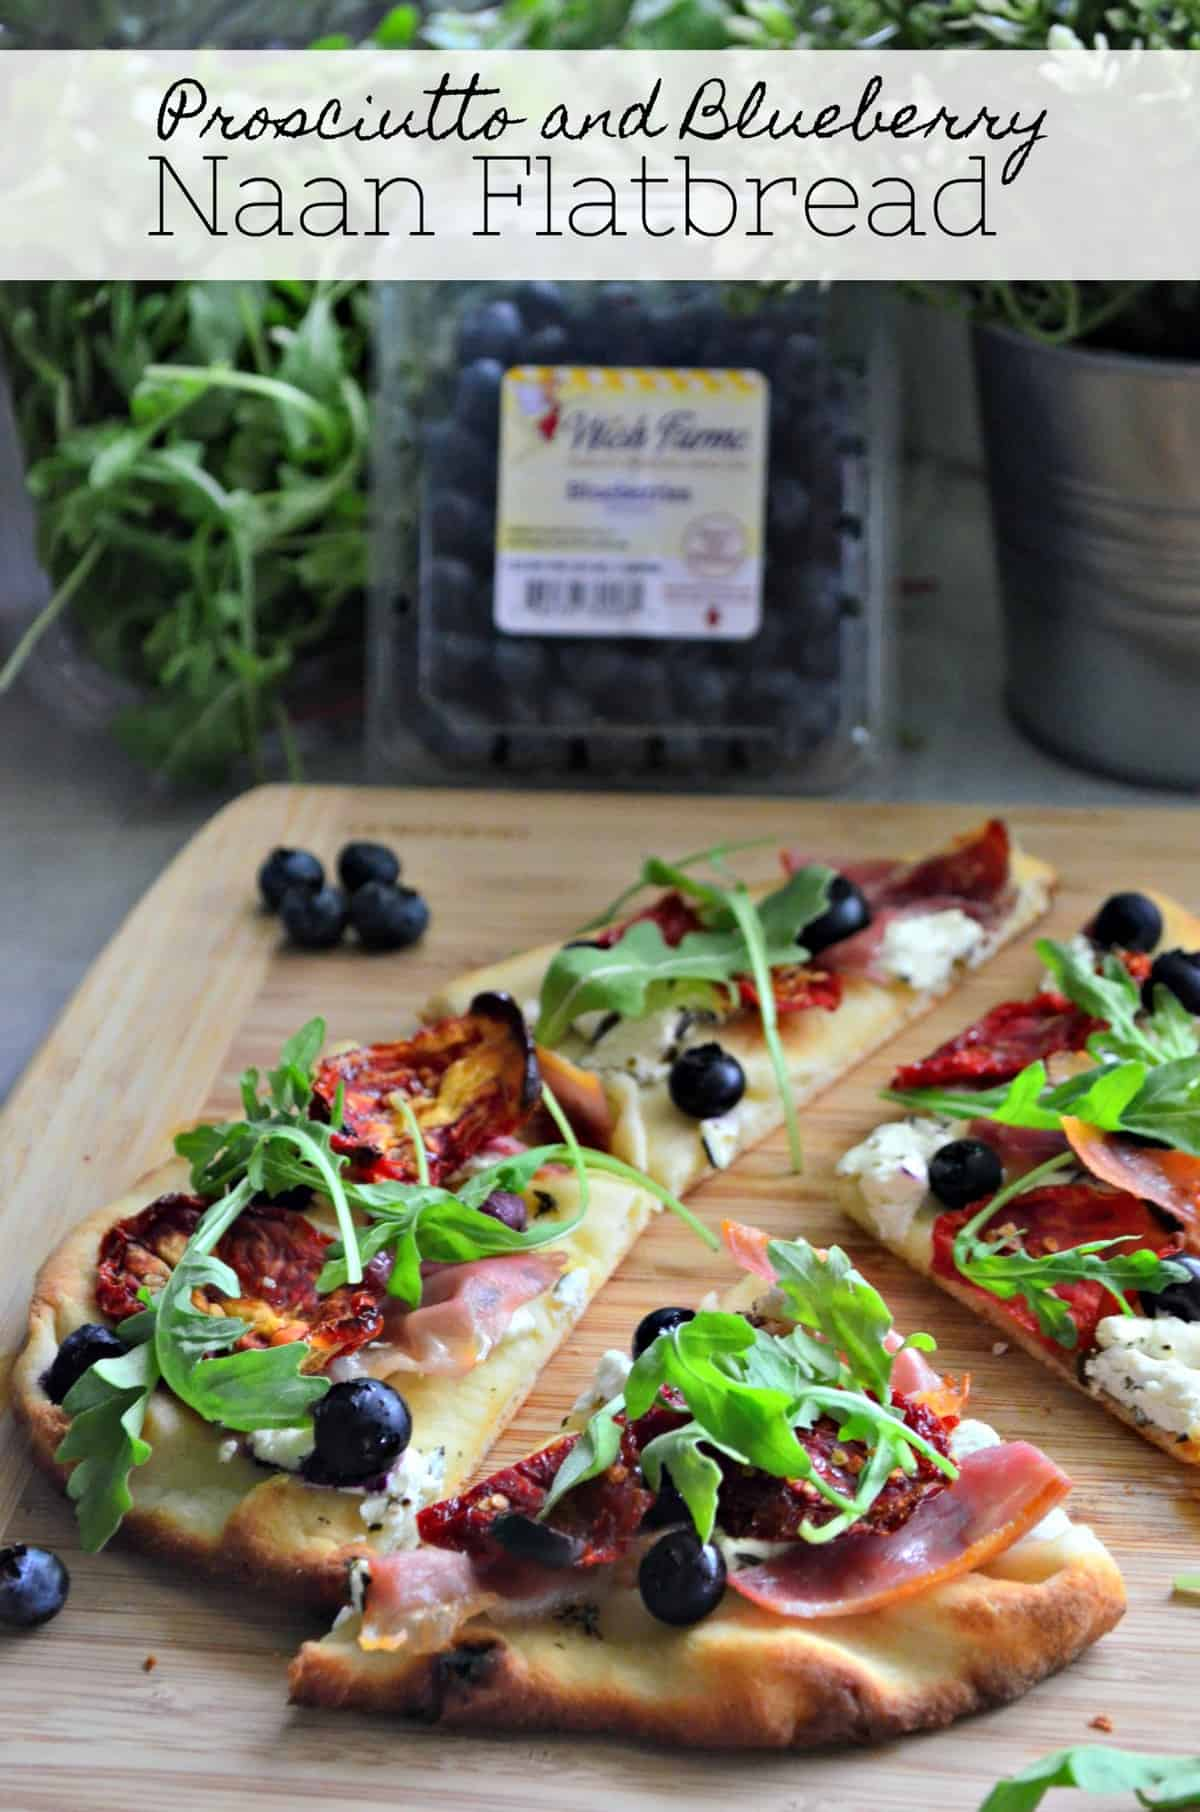 Flatbread topped with prosiutto, arugula, blueberries, cheese, and sundried tomato with title text.